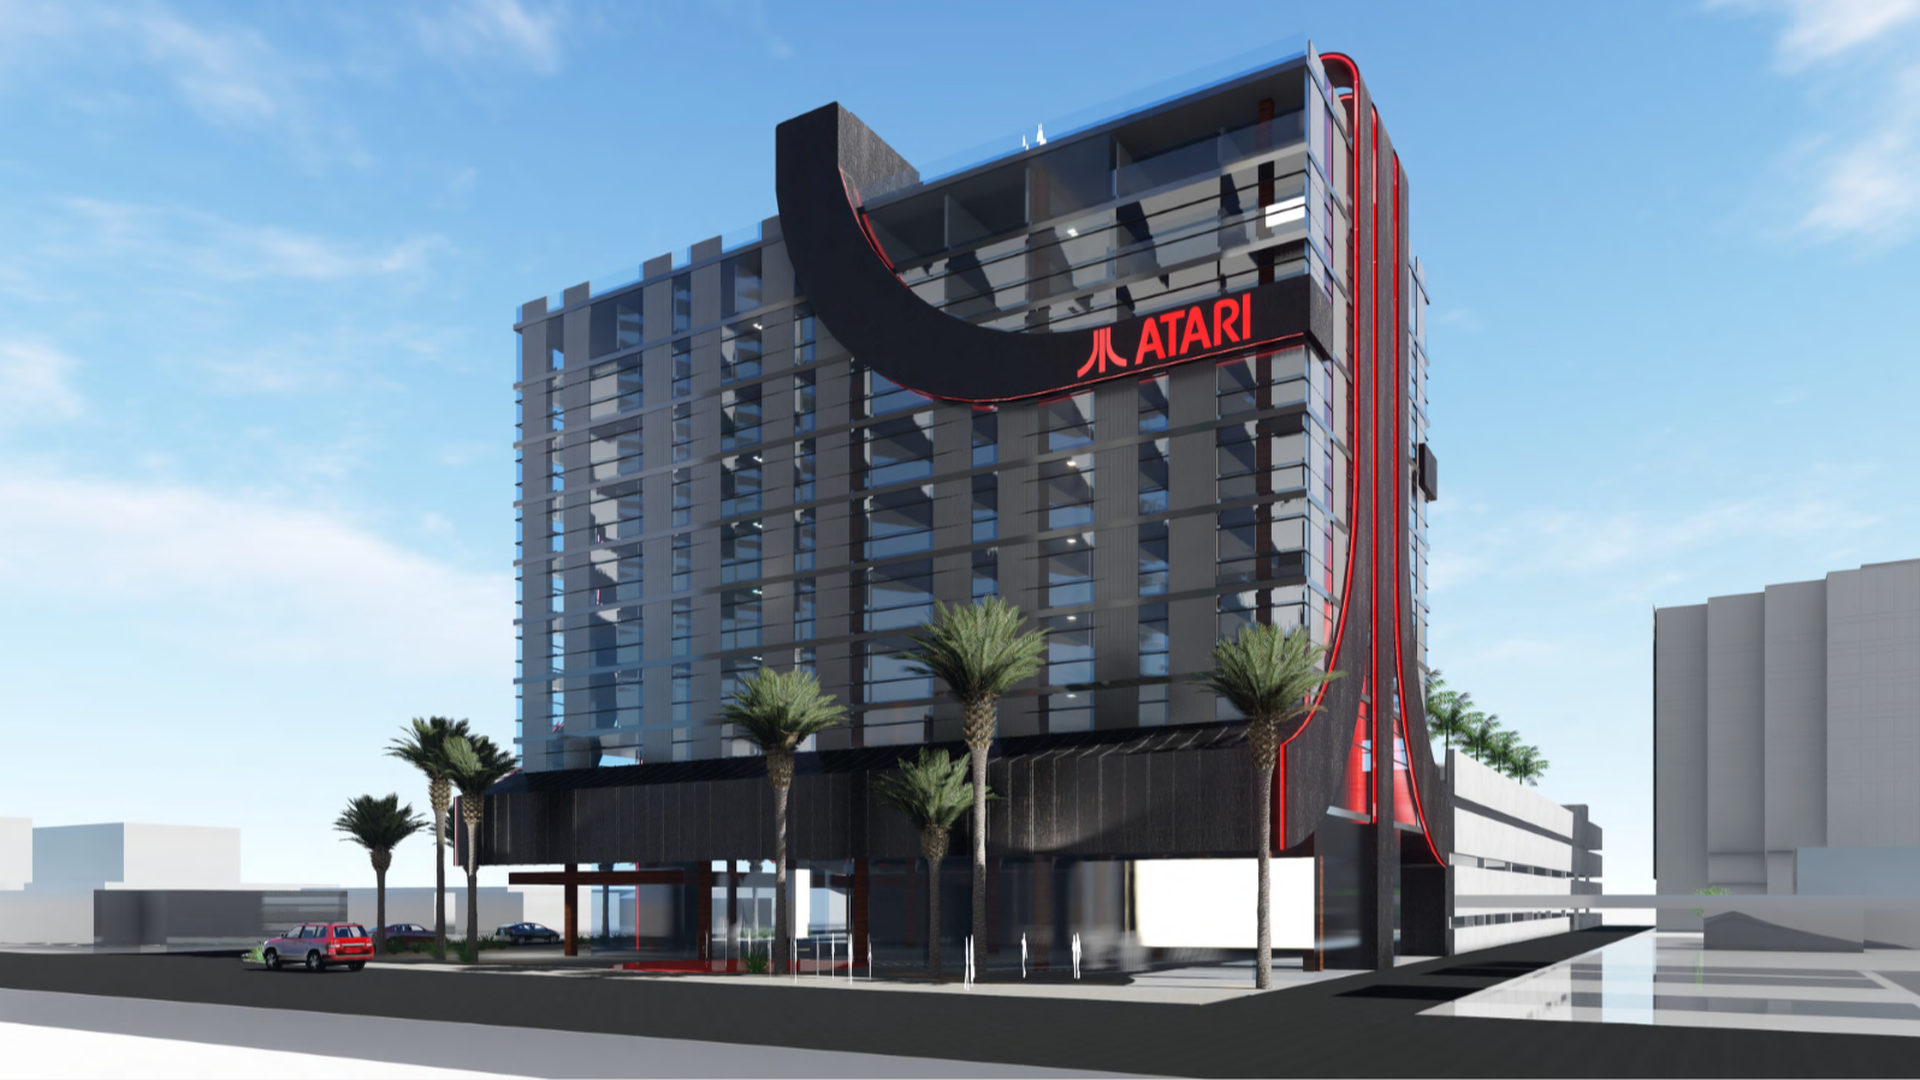 Architectural rendering of Atari hotel